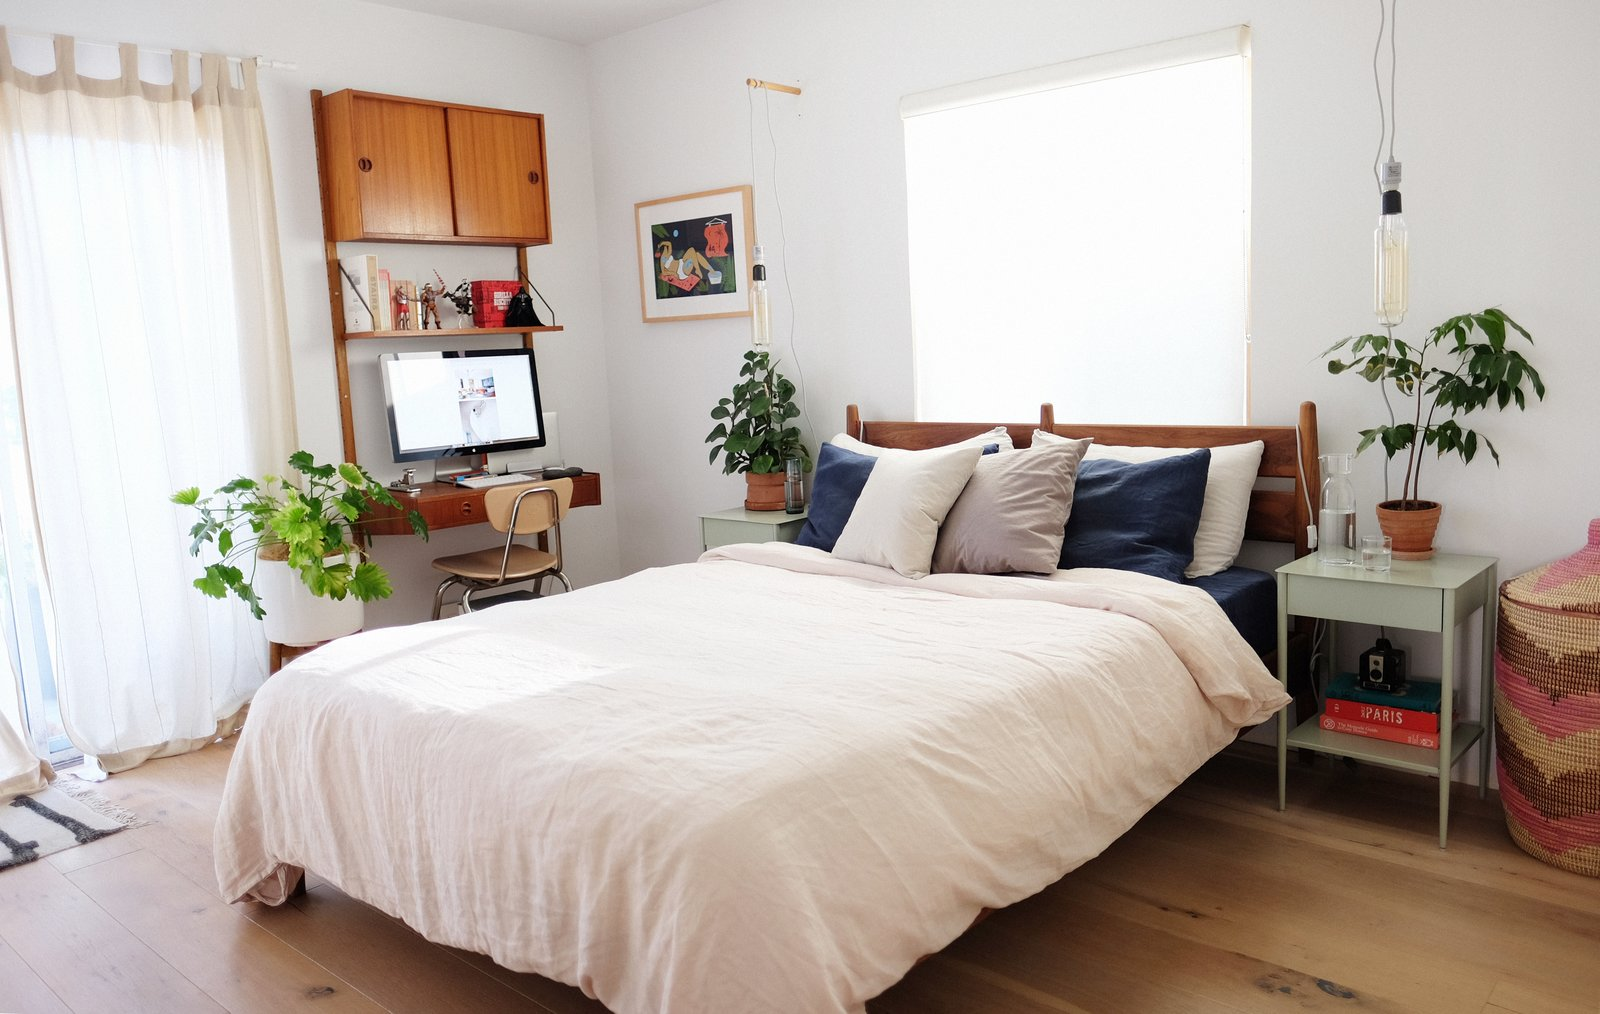 Bedroom, Bed, Chair, Night Stands, Medium Hardwood, Pendant, and Ceiling Their Room & Board bed is swathed in sheets from Parachute Home.   Bedroom Pendant Chair Bed Photos from My House: How a Designer Couple Are Weathering the Pandemic in Their Berkeley Home